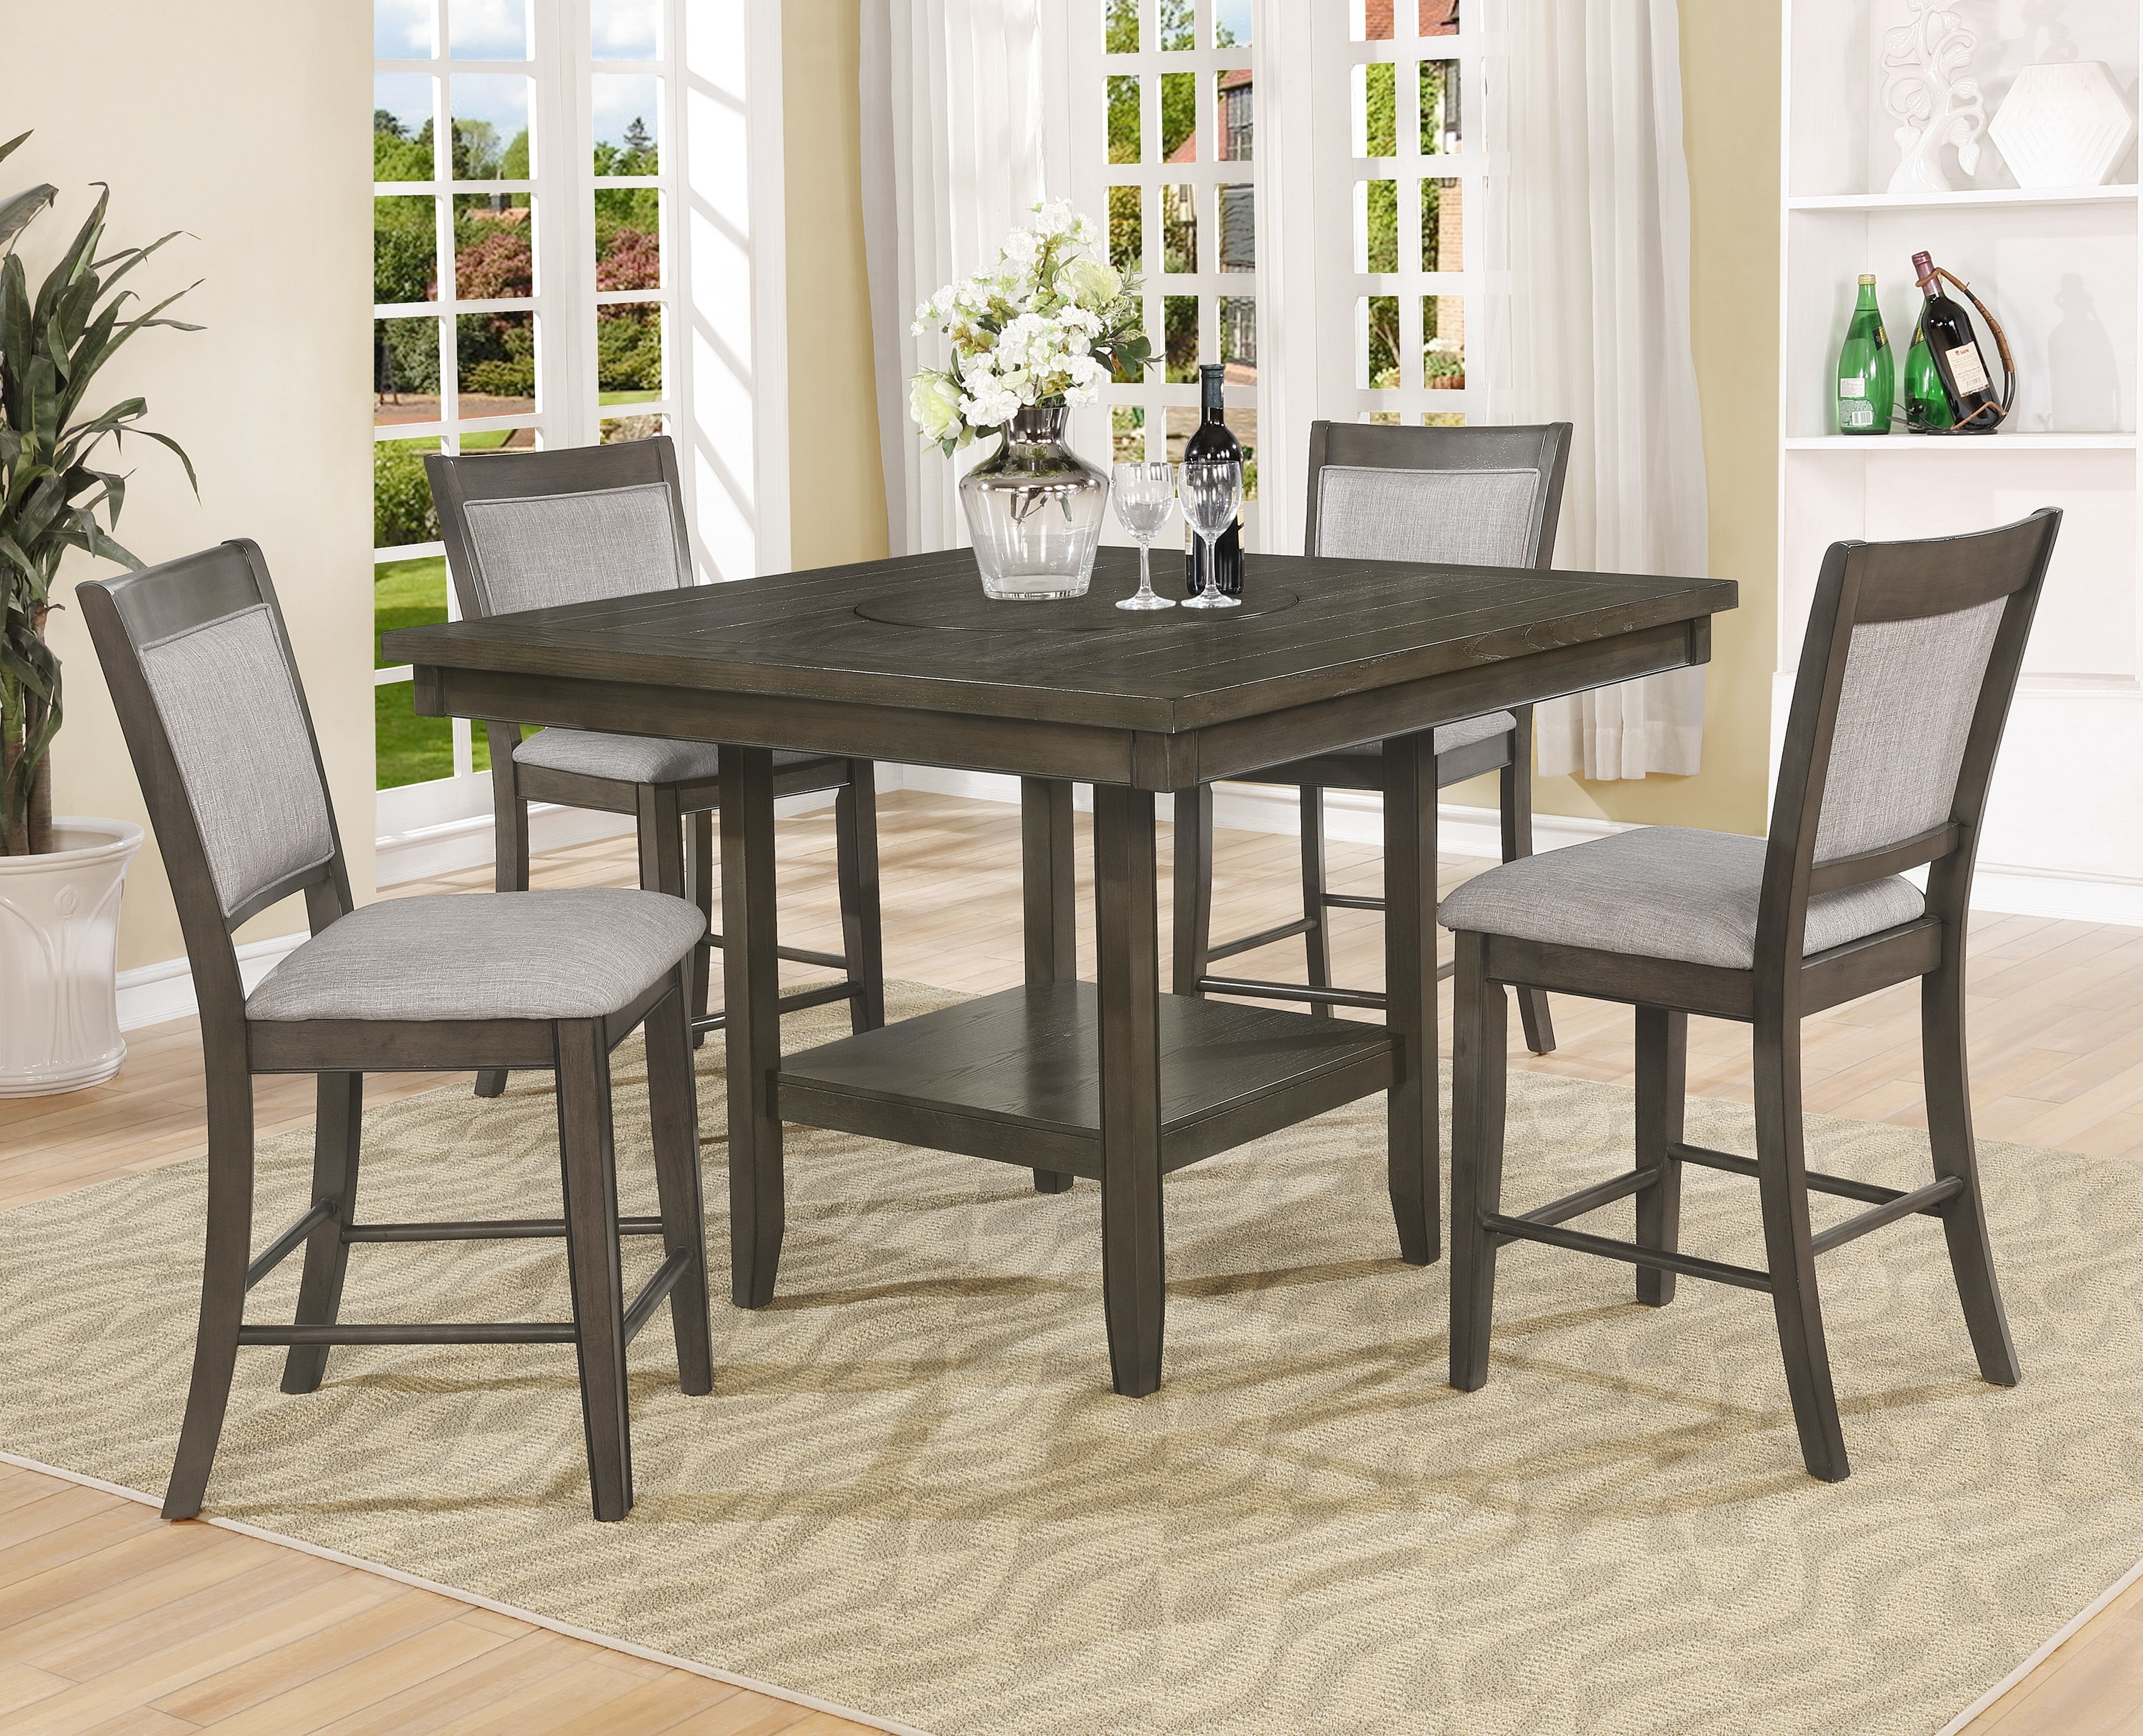 Gracie Oaks Briella 5 Piece Counter Height Dining Set | Wayfair With Most Popular Parquet 7 Piece Dining Sets (Photo 16 of 20)